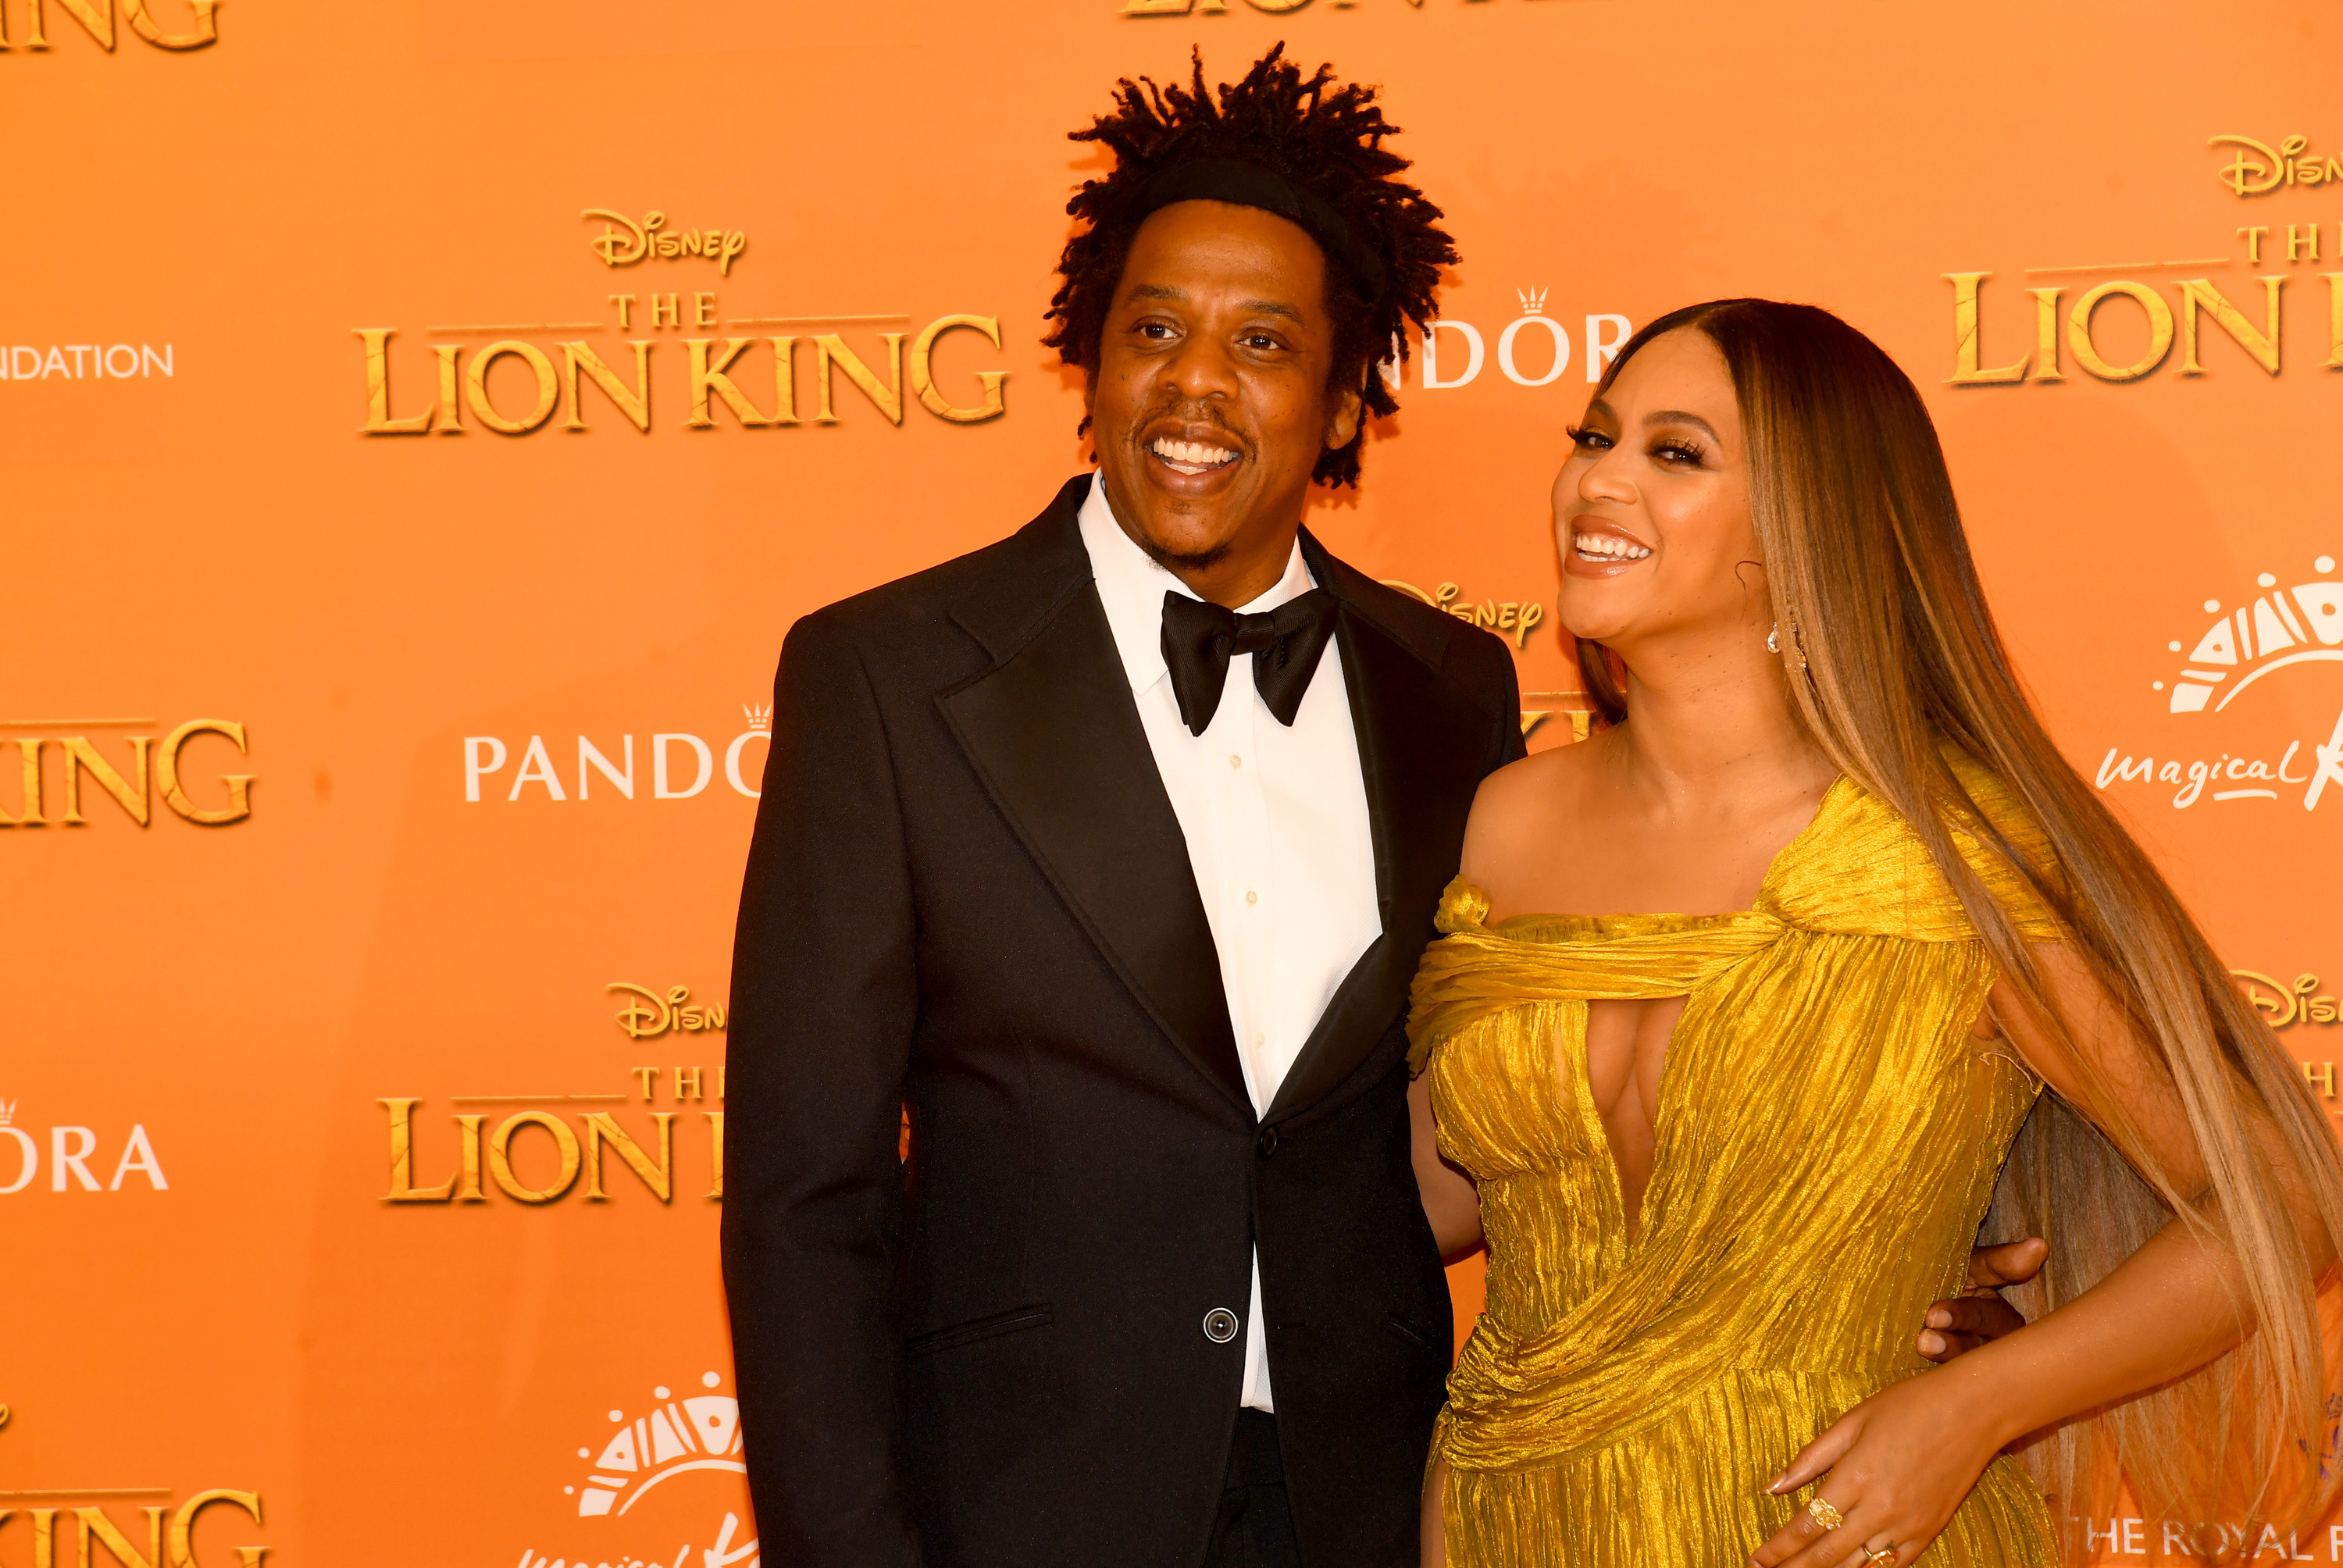 Jay-Z and Beyonce at the European premiere of The Lion King in 2019